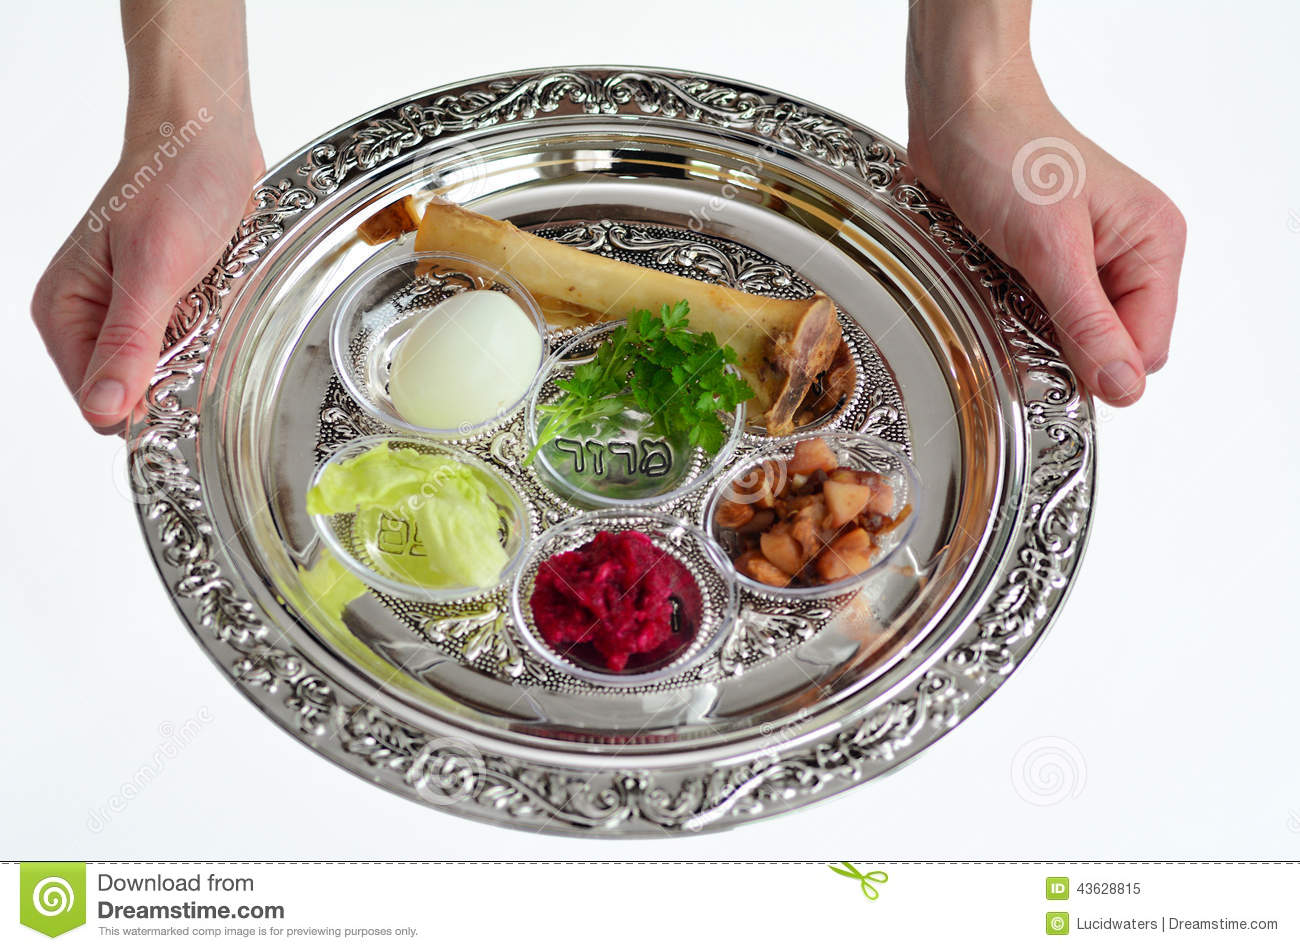 Passover Seder Plate Stock Photo - Image: 43628815